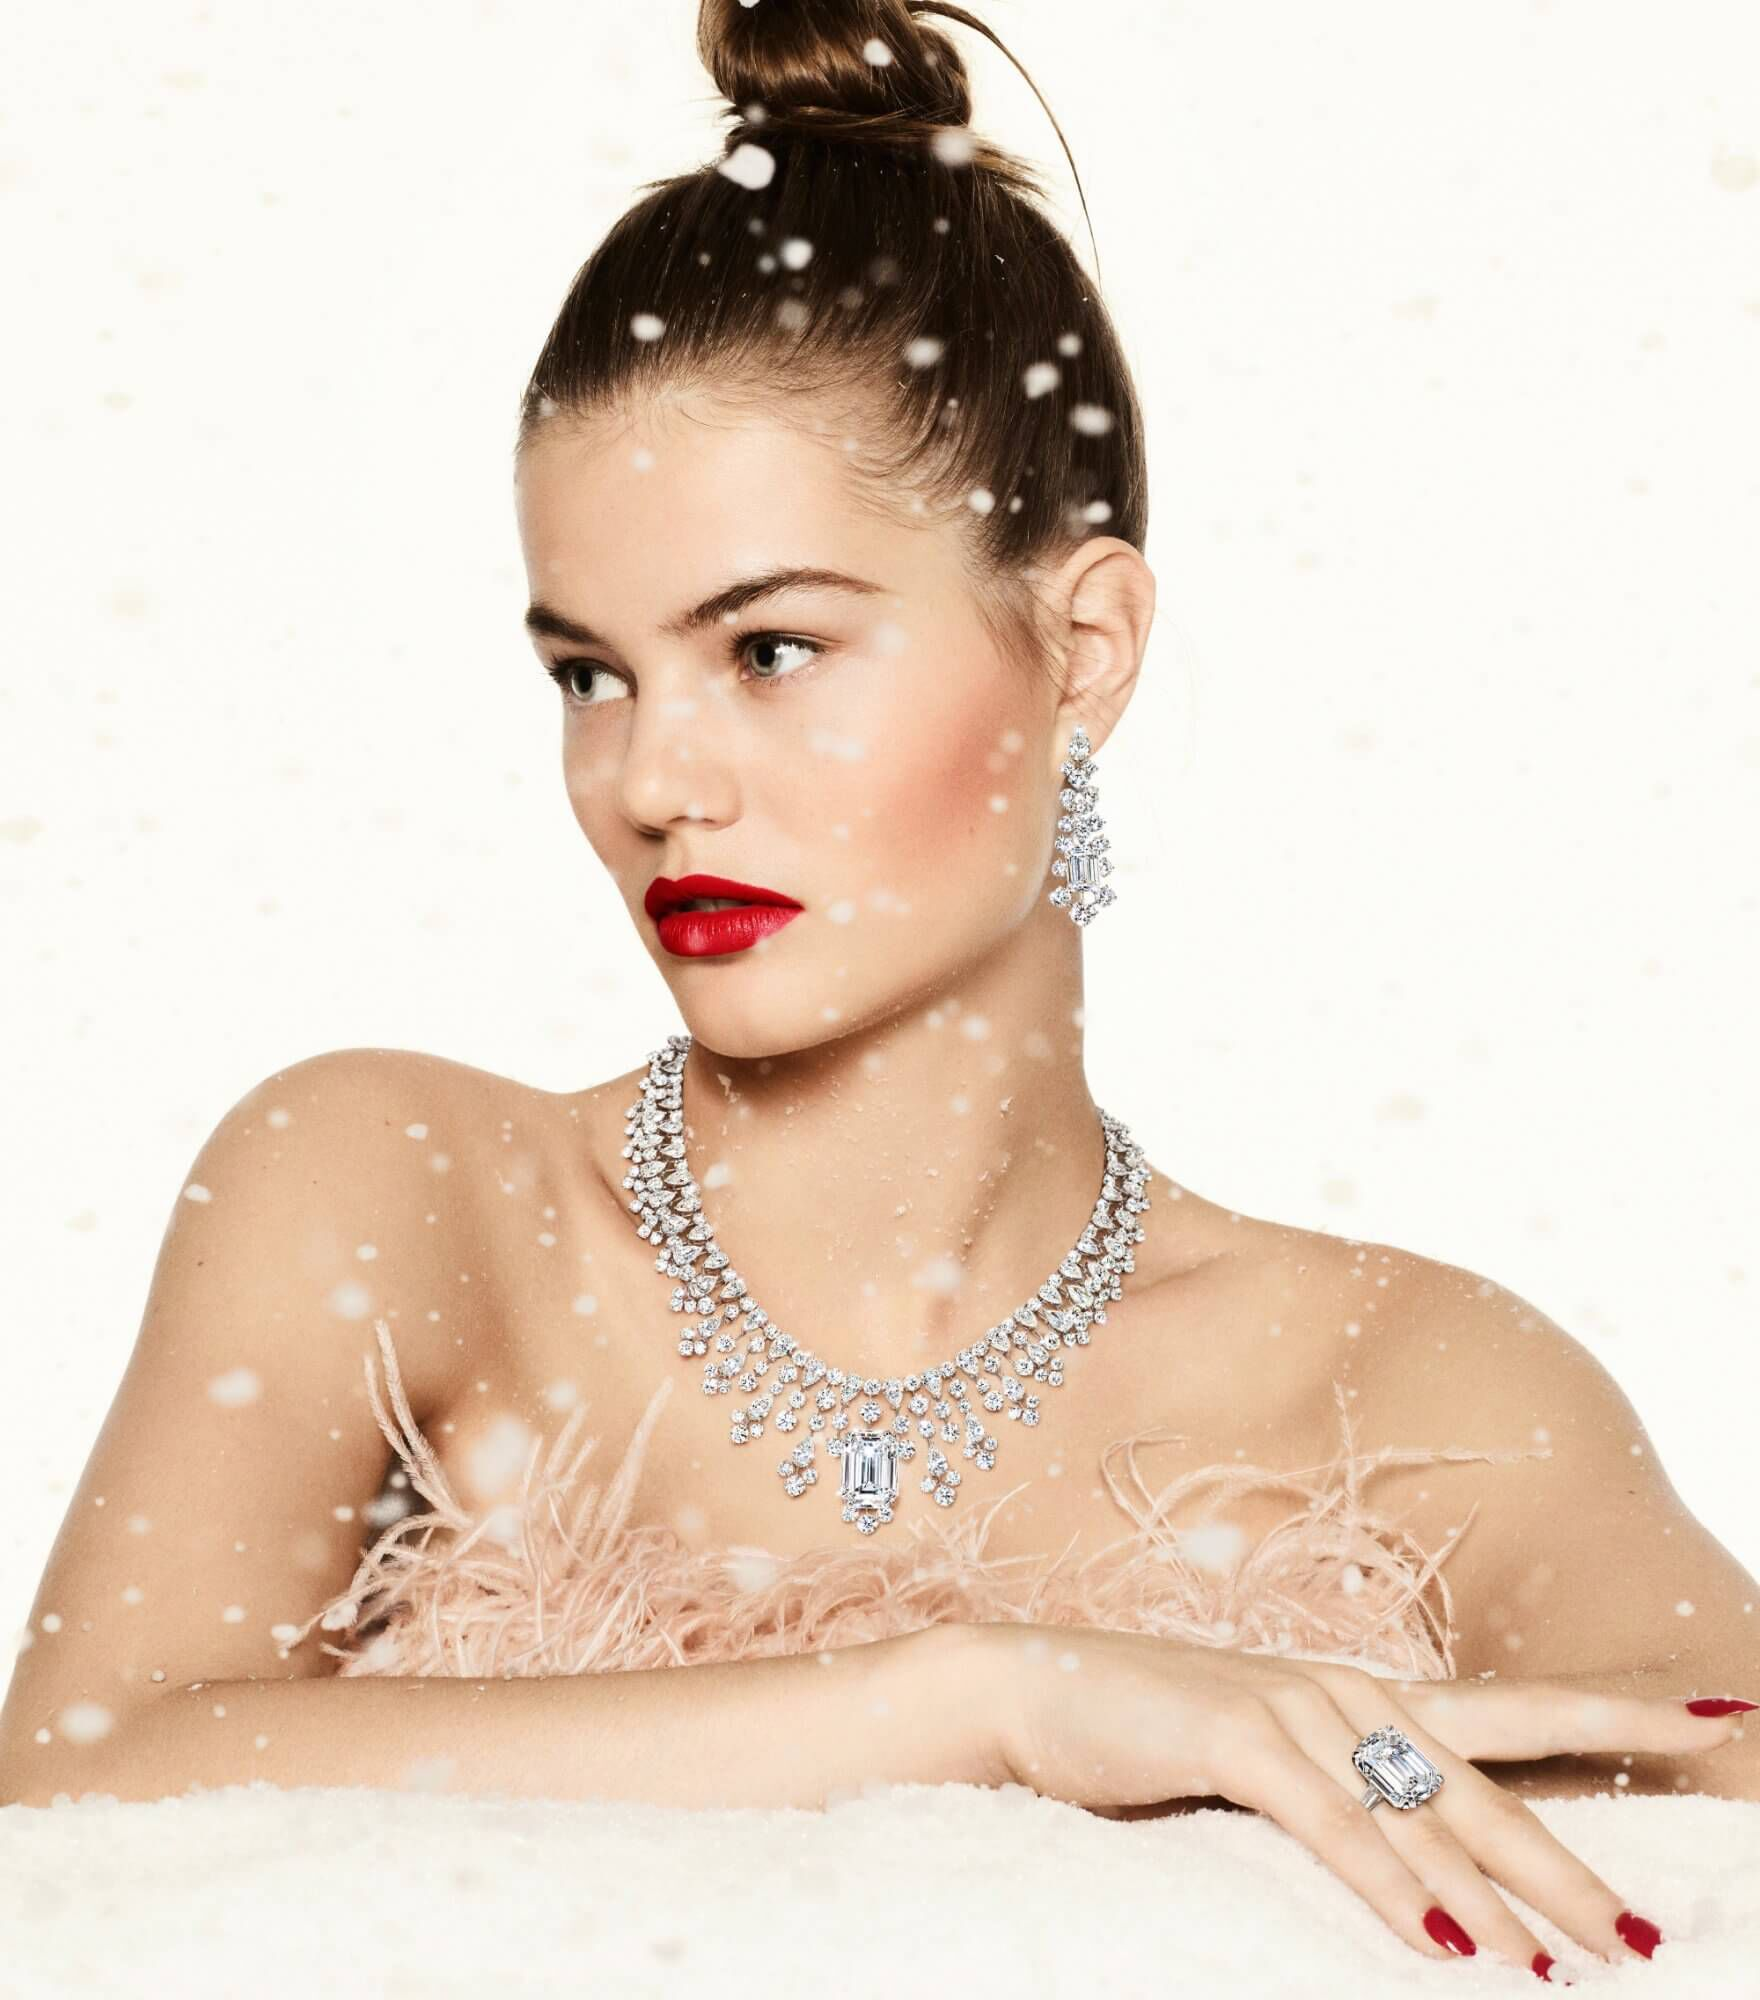 Model wearing Graff high jewellery diamond necklace, earrings and ring